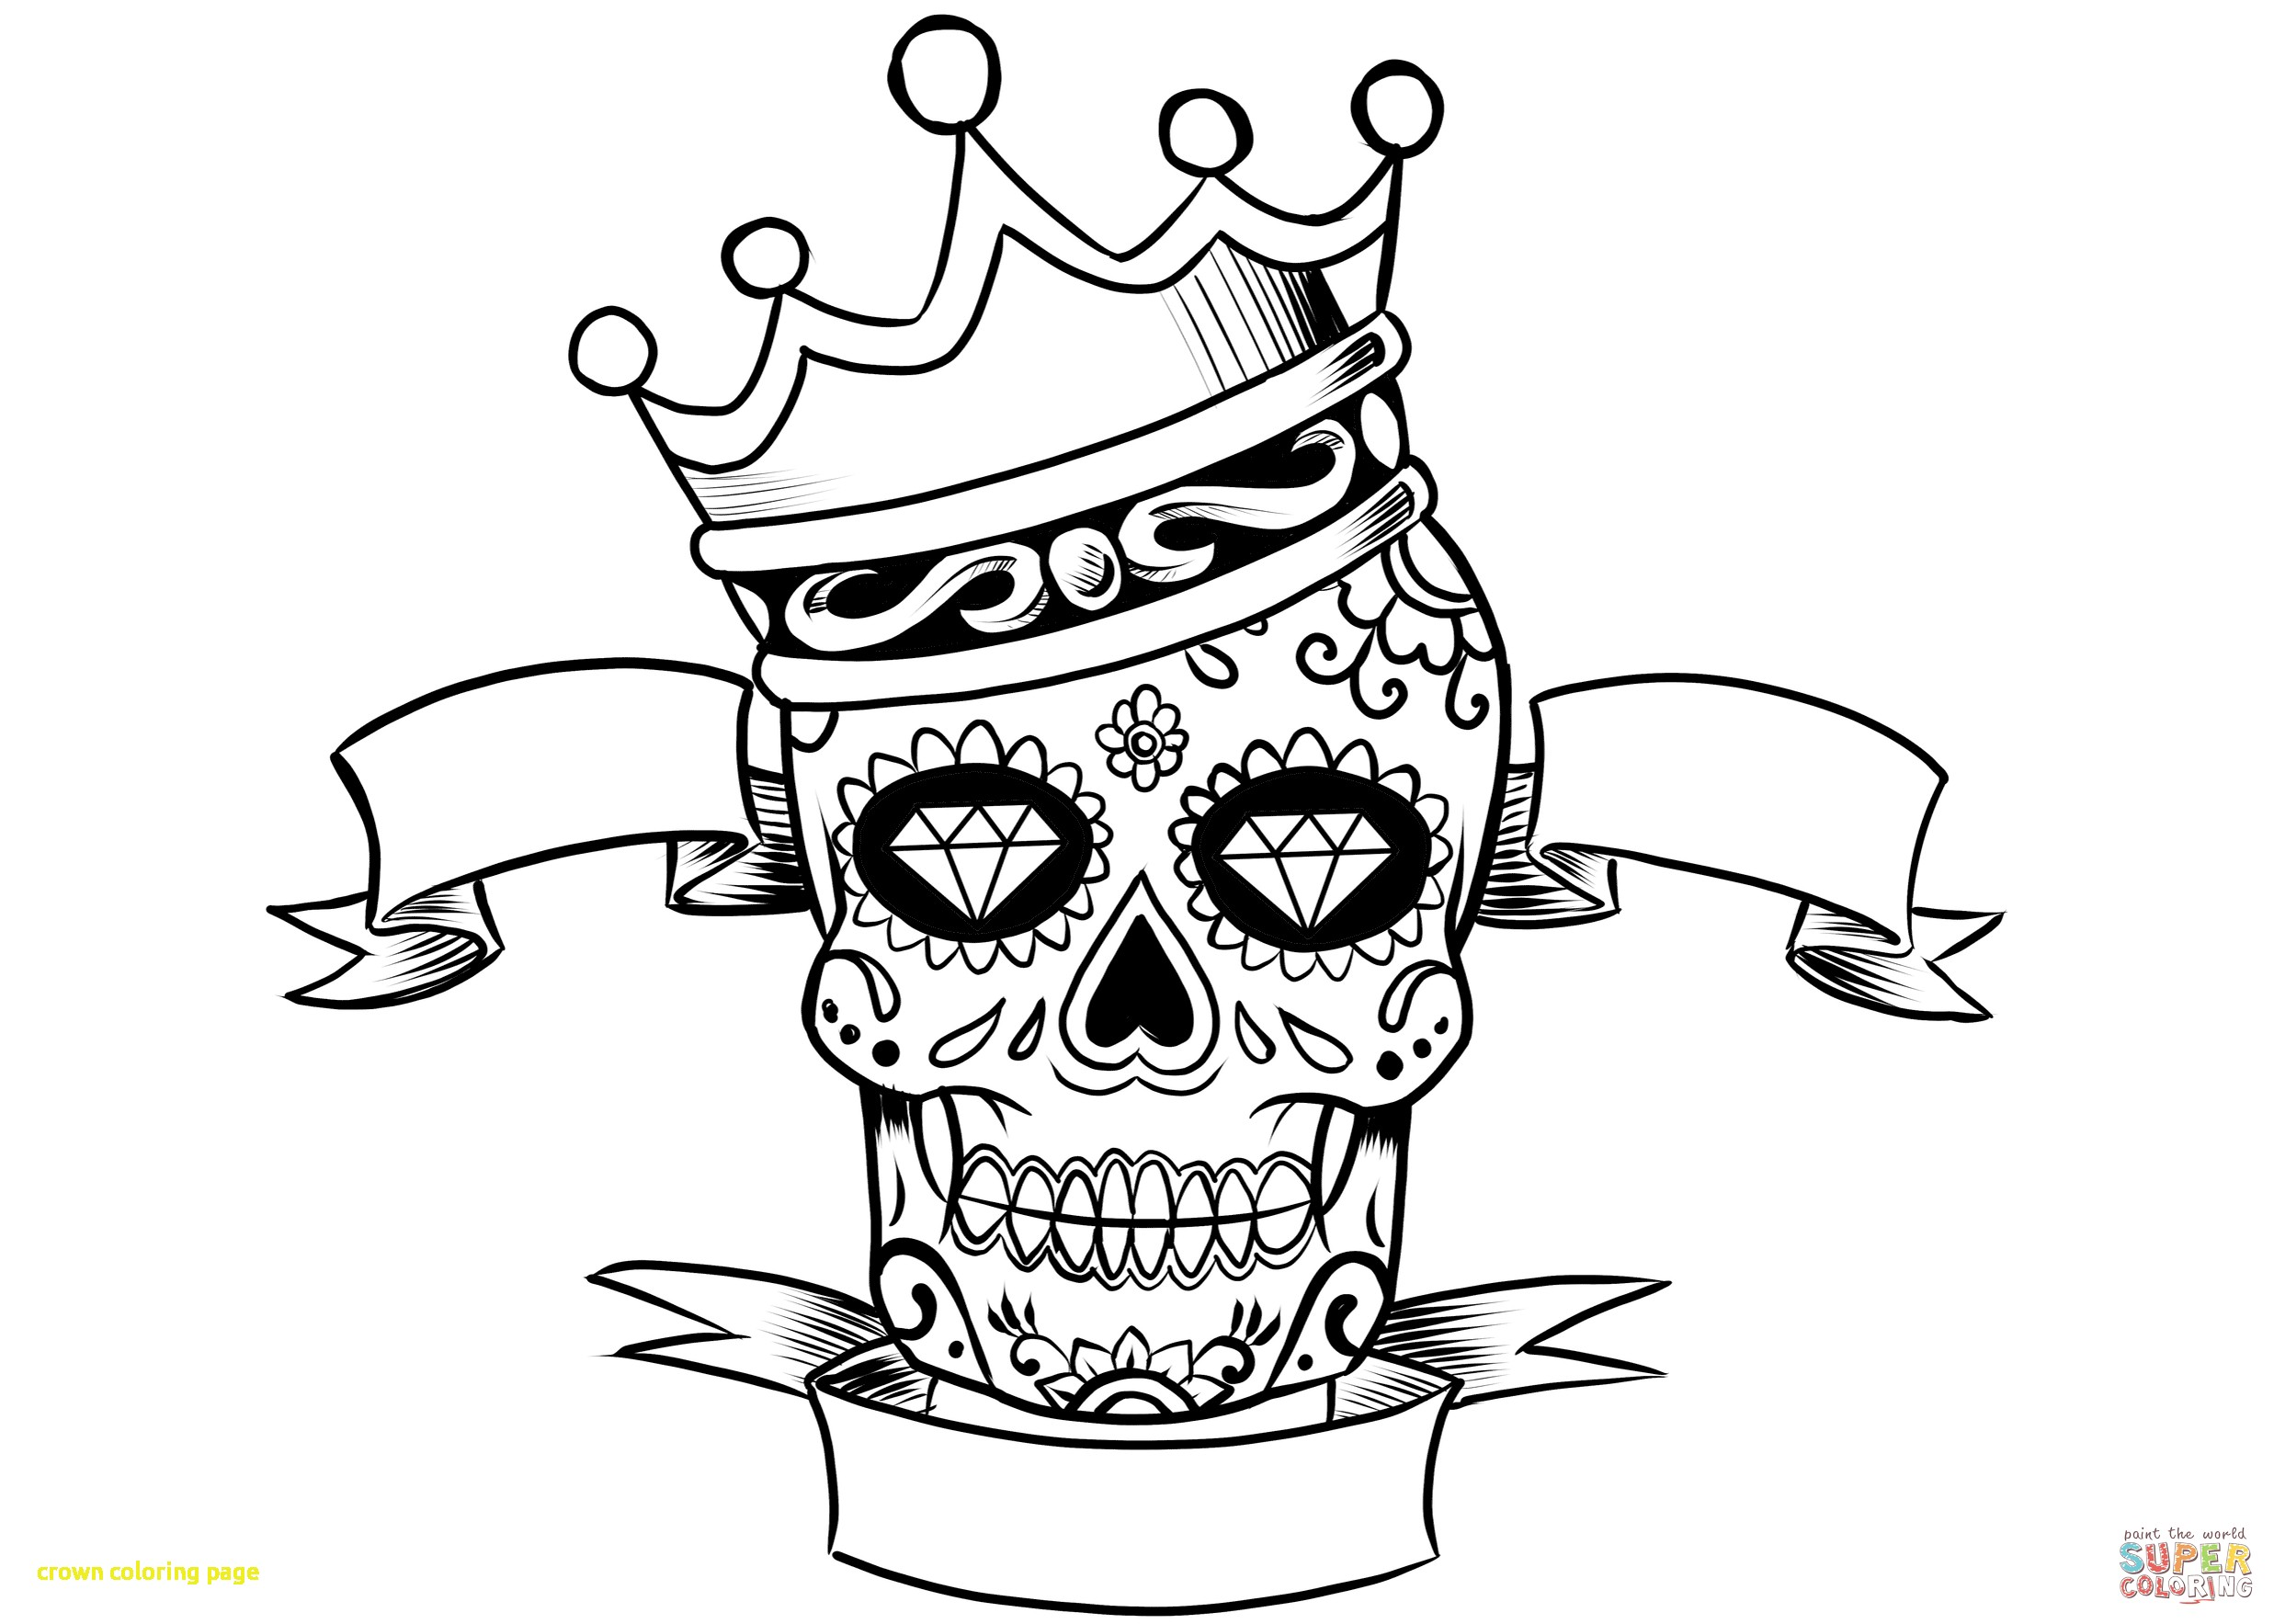 Sugar Skull Drawing Easy at GetDrawings.com | Free for personal use ...